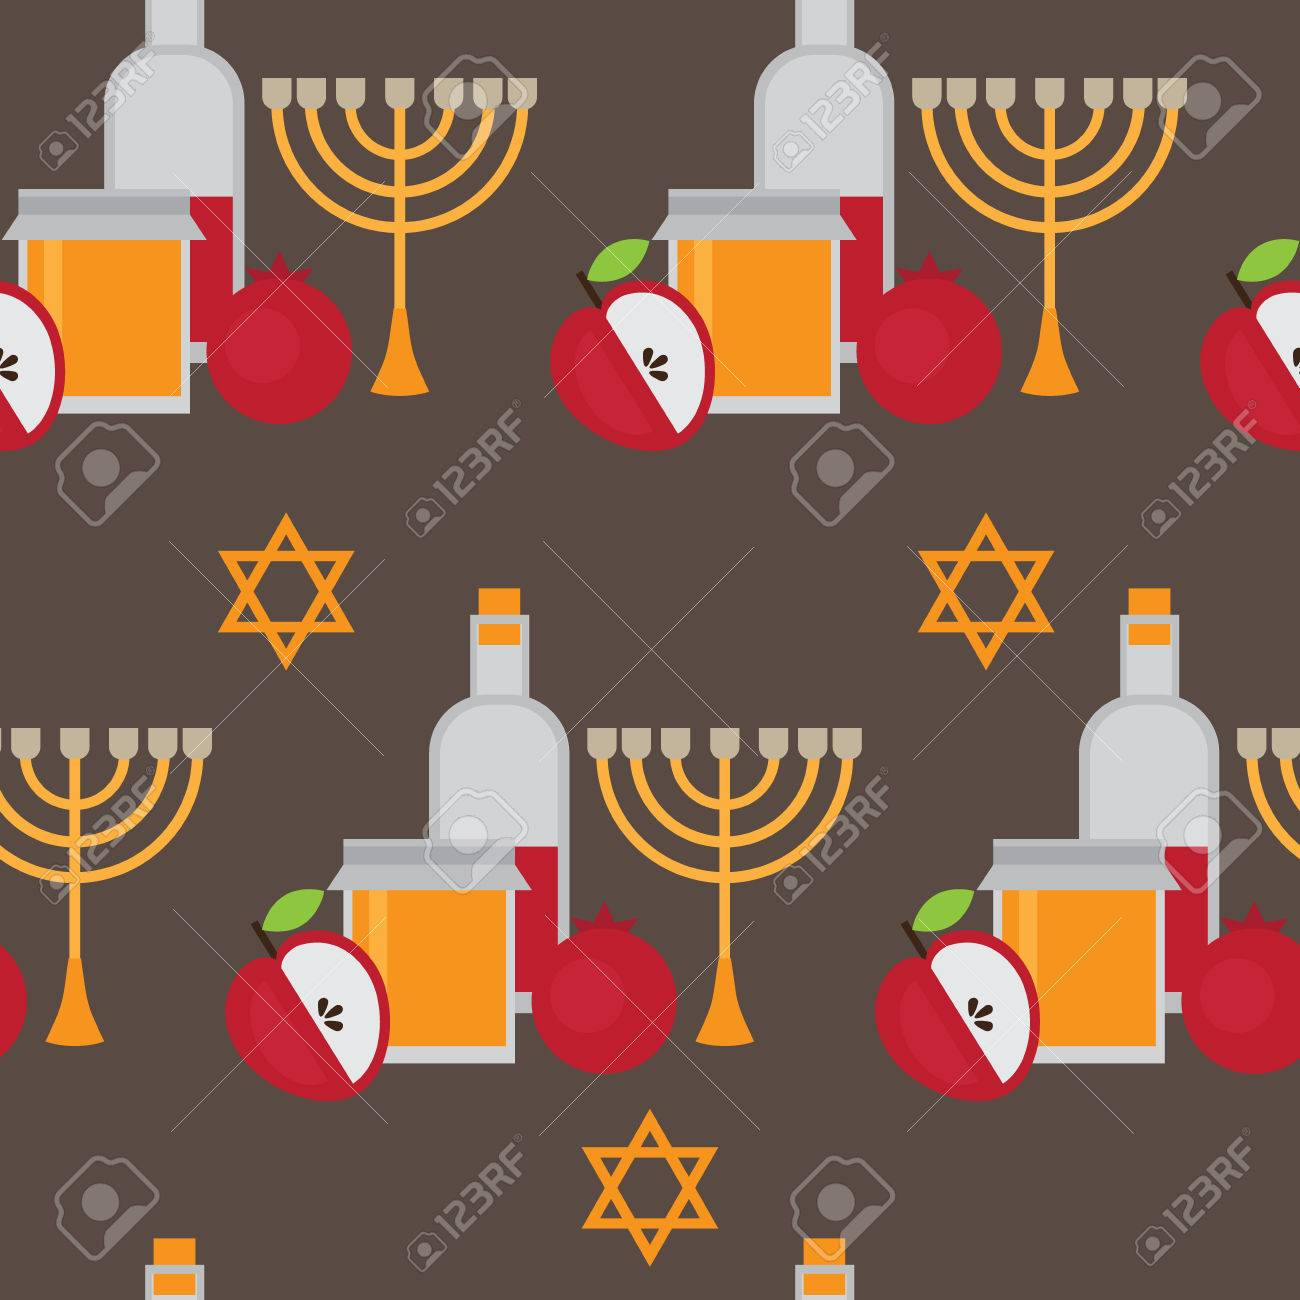 Happy Jewish New Year Greetings Images Greetings Card Design Simple